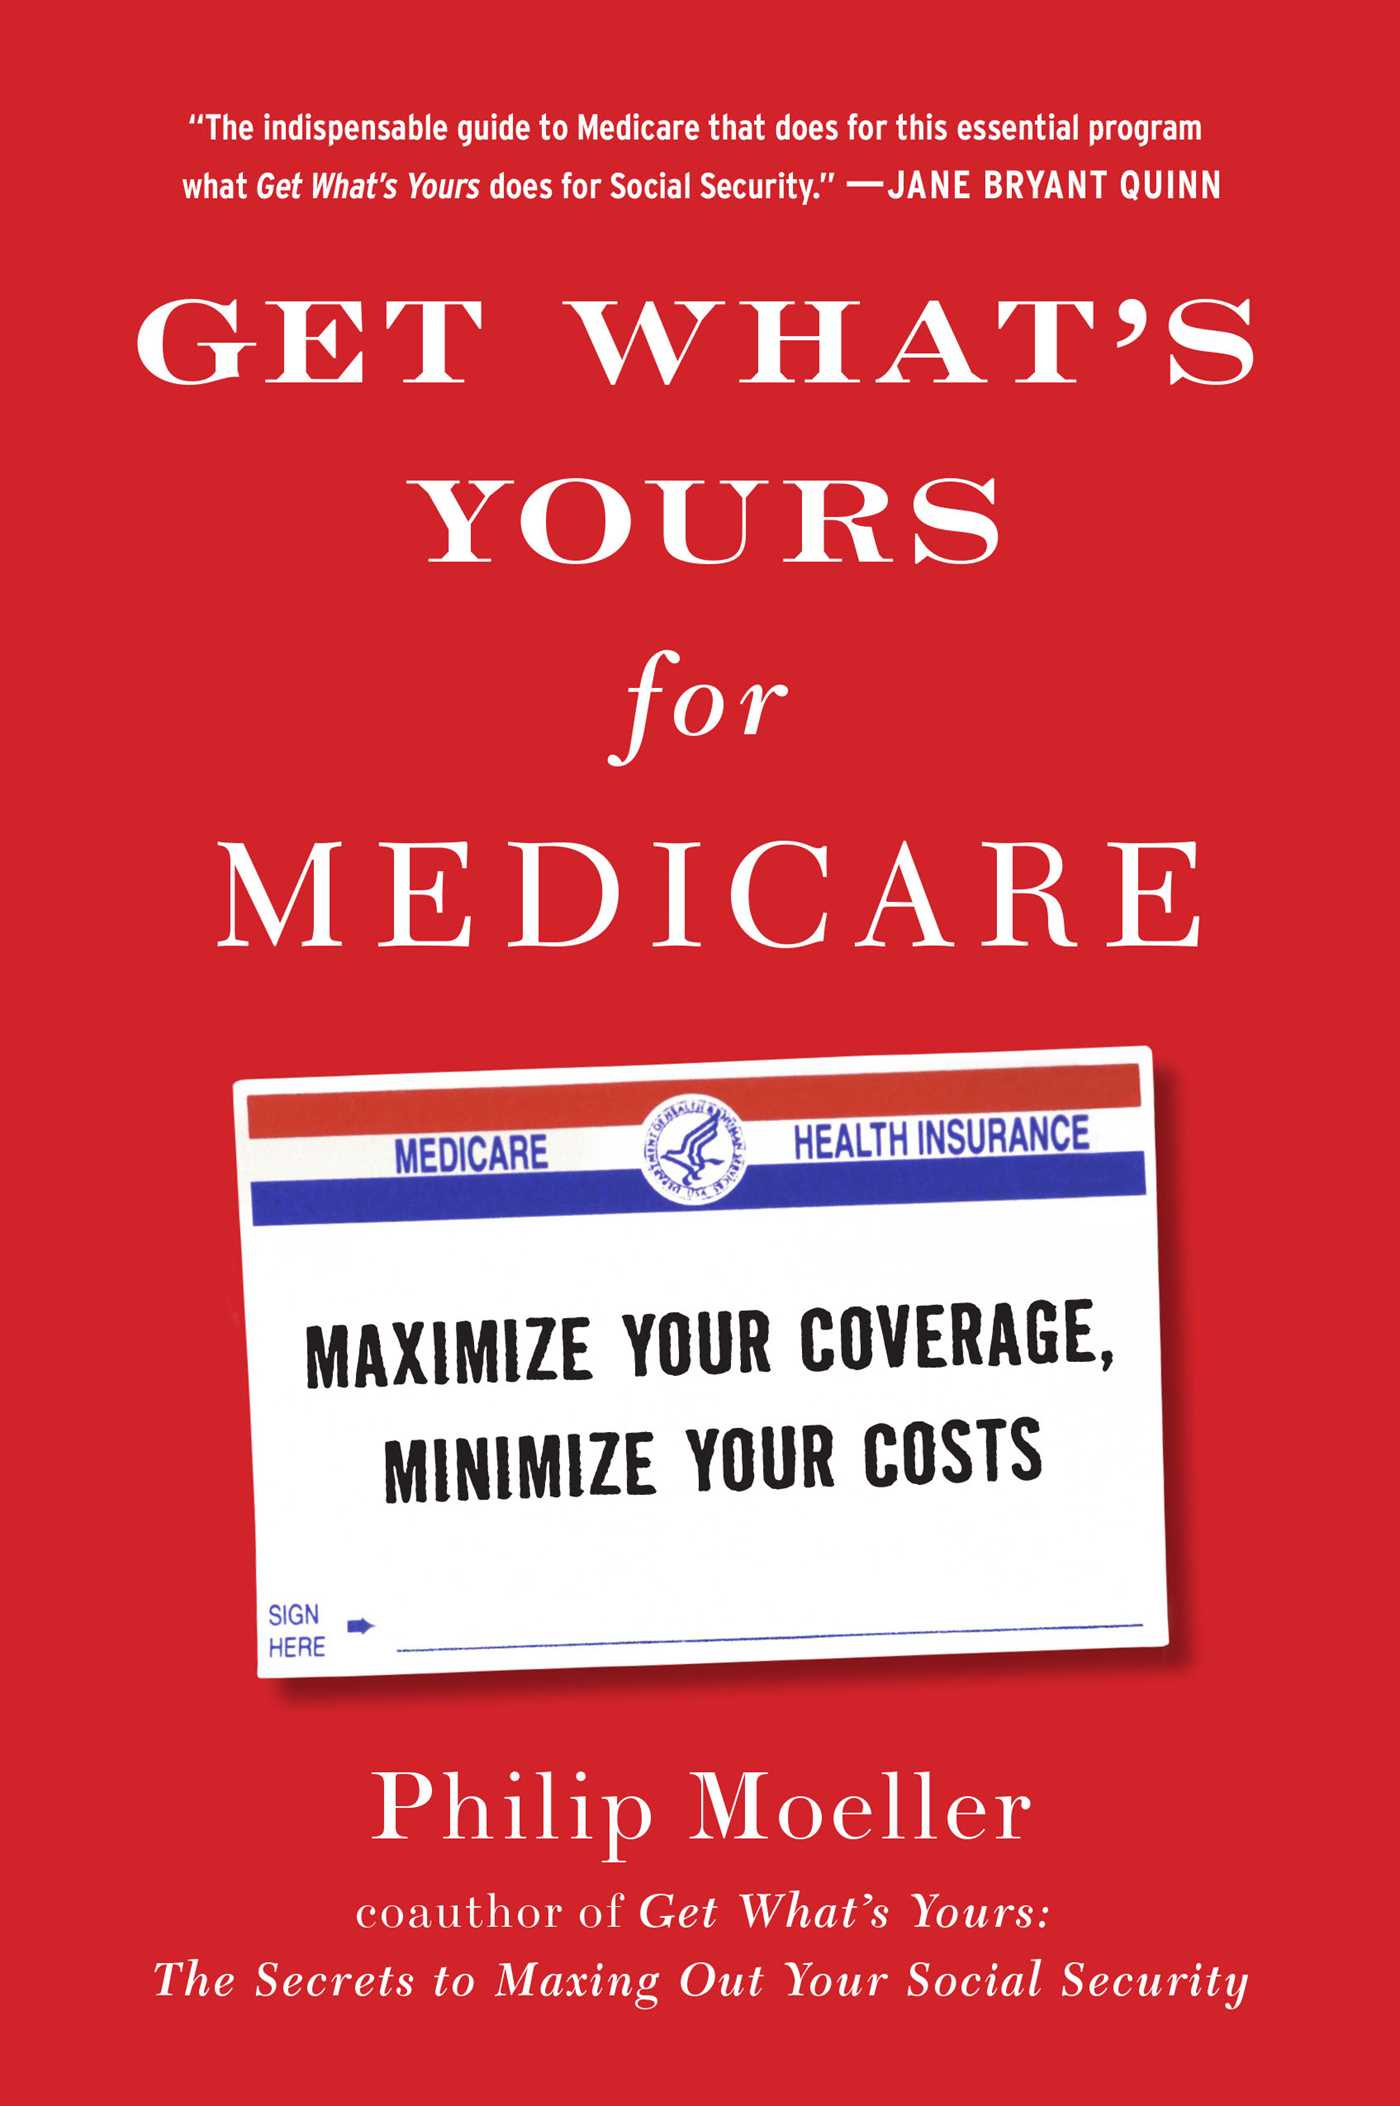 Get whats yours for medicare 9781501124006 hr